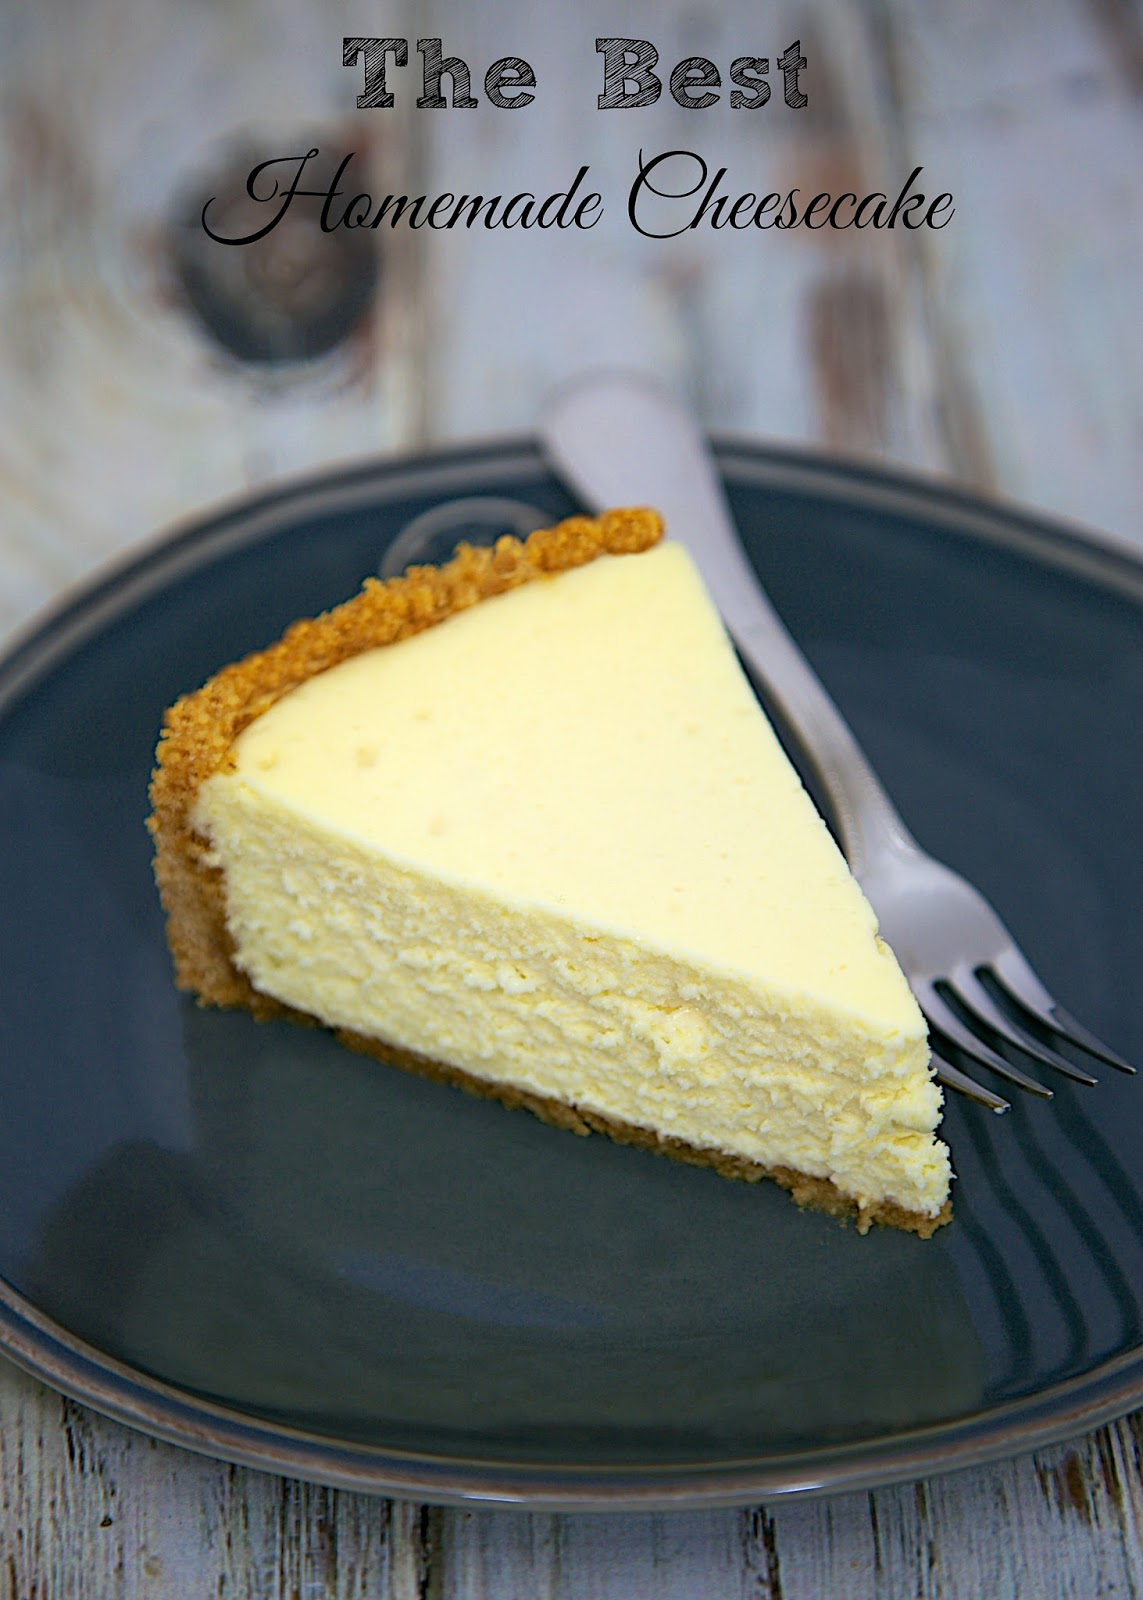 The Best Homemade Cheesecake Get Secret For Lightest And Fluffiest Ever